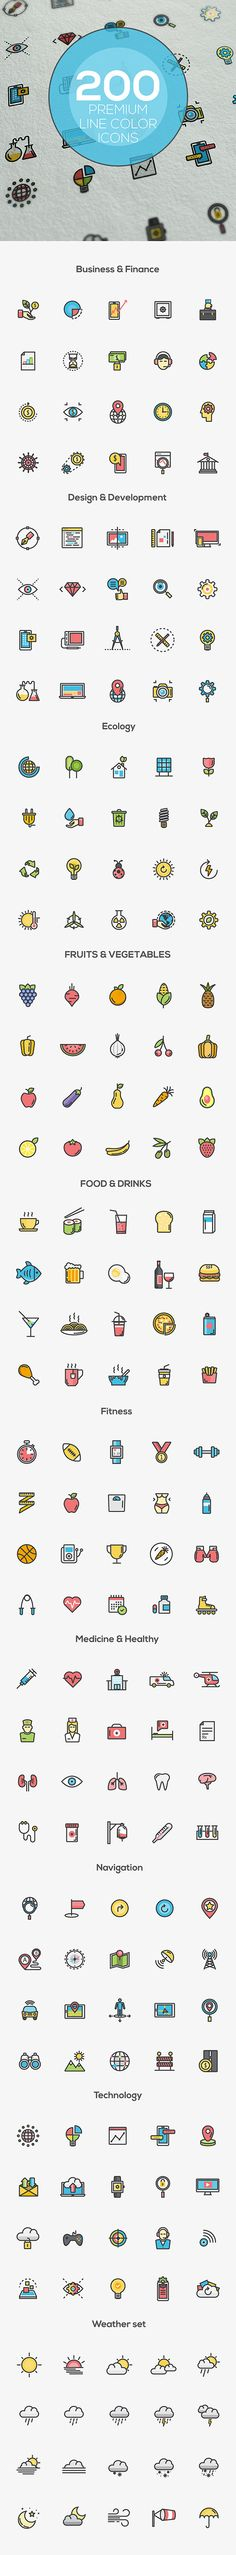 Line Color icons set on Behance